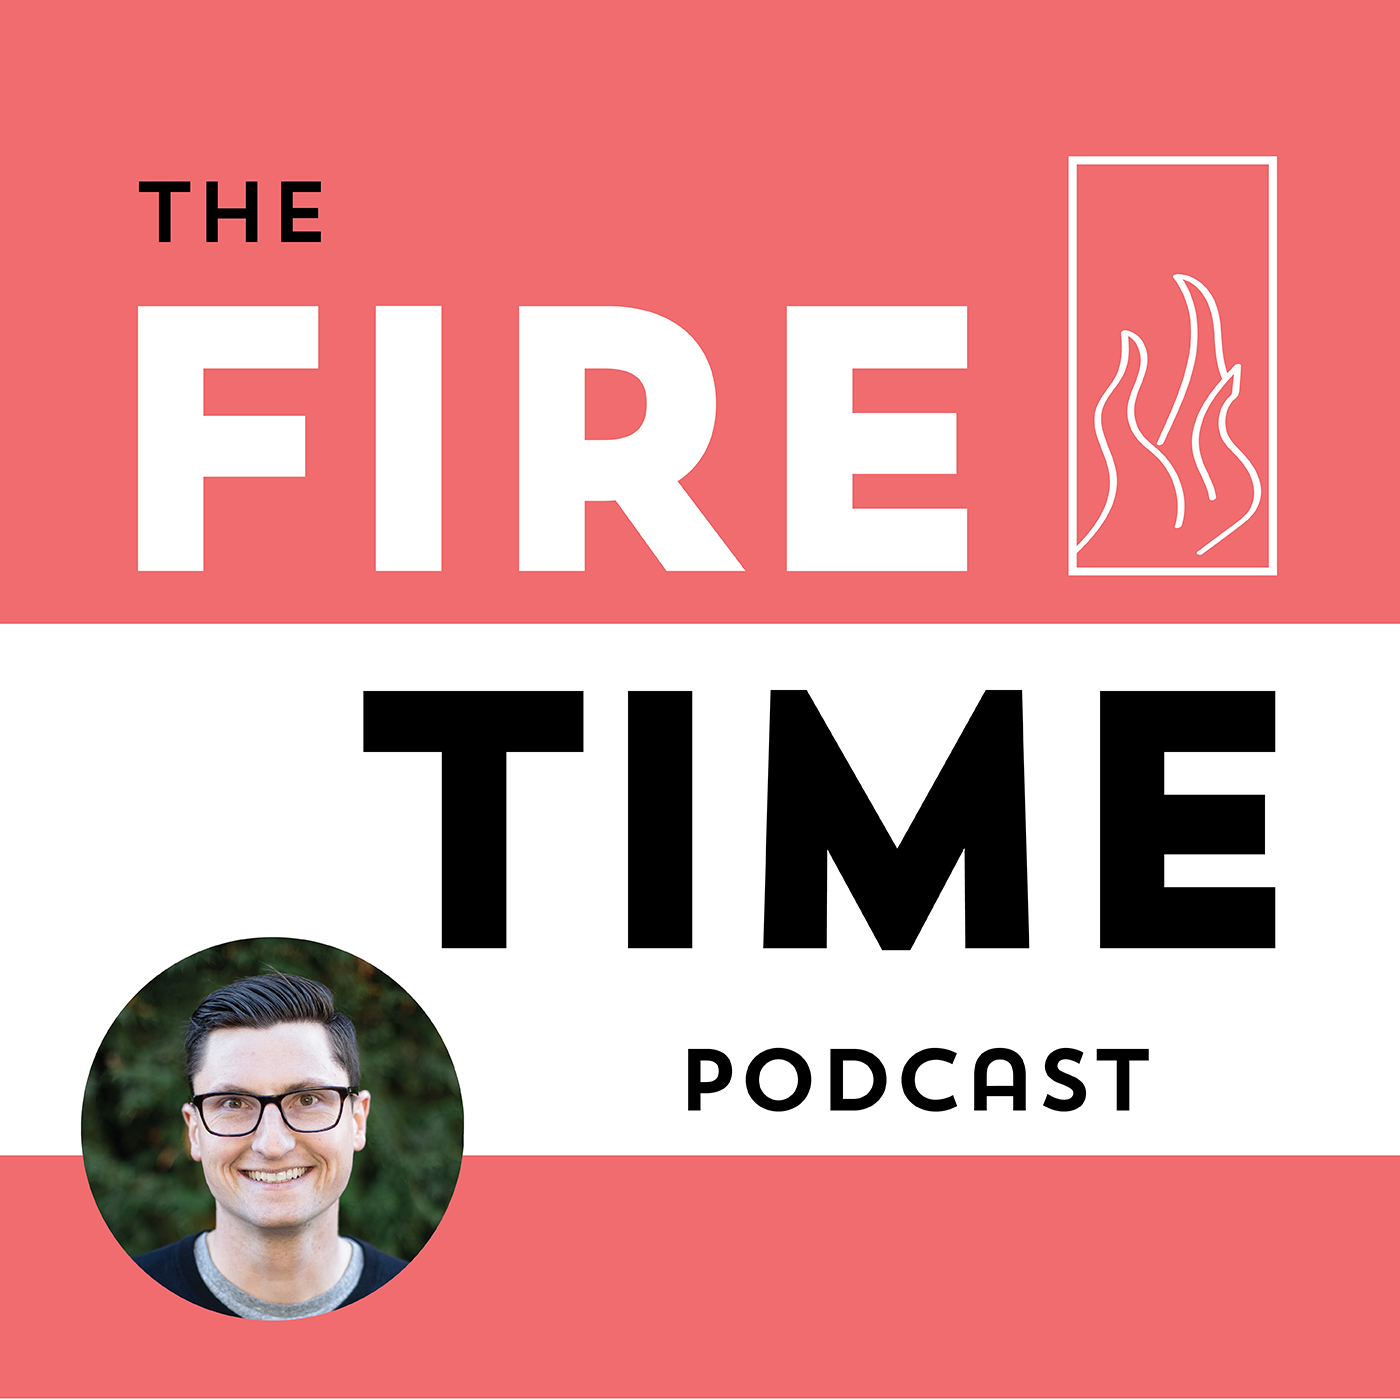 The Fire Time Podcast show art